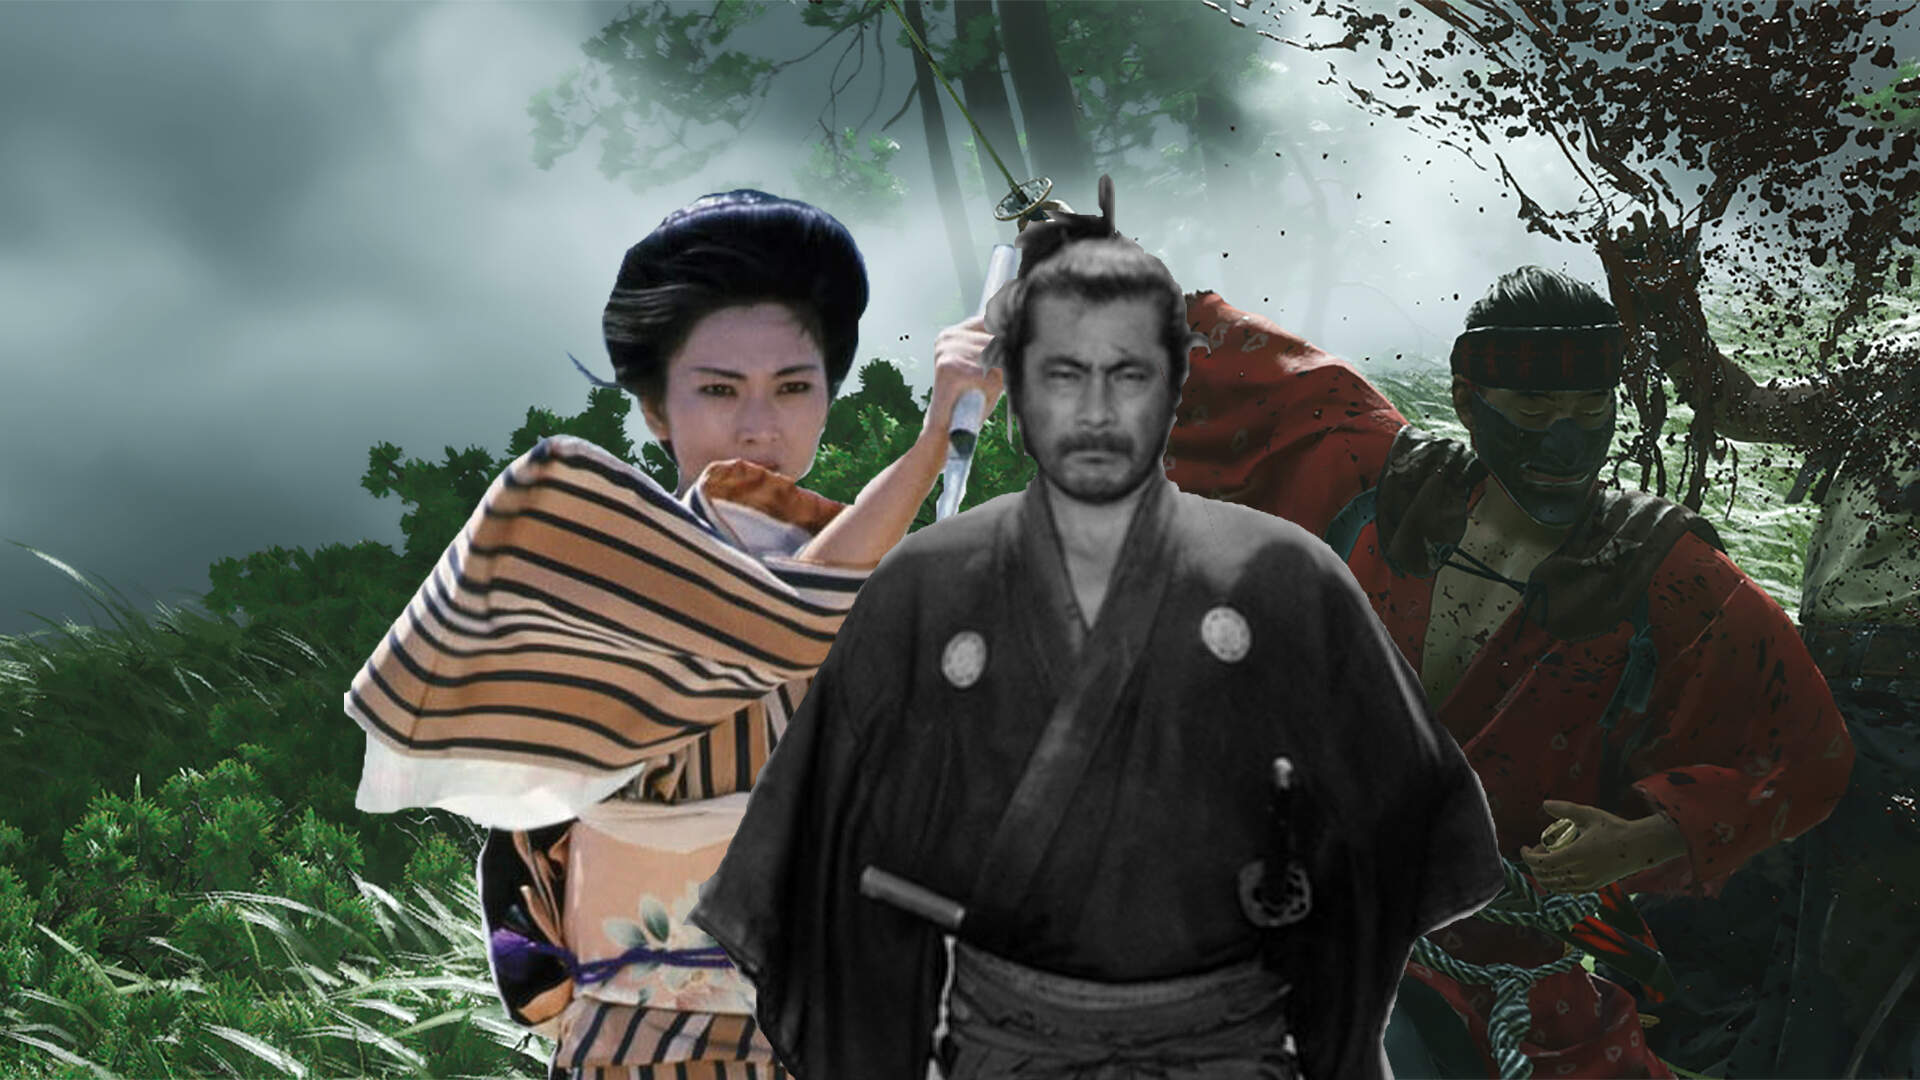 These Are the Samurai Films You Should Watch After Finishing Ghost of Tsushima